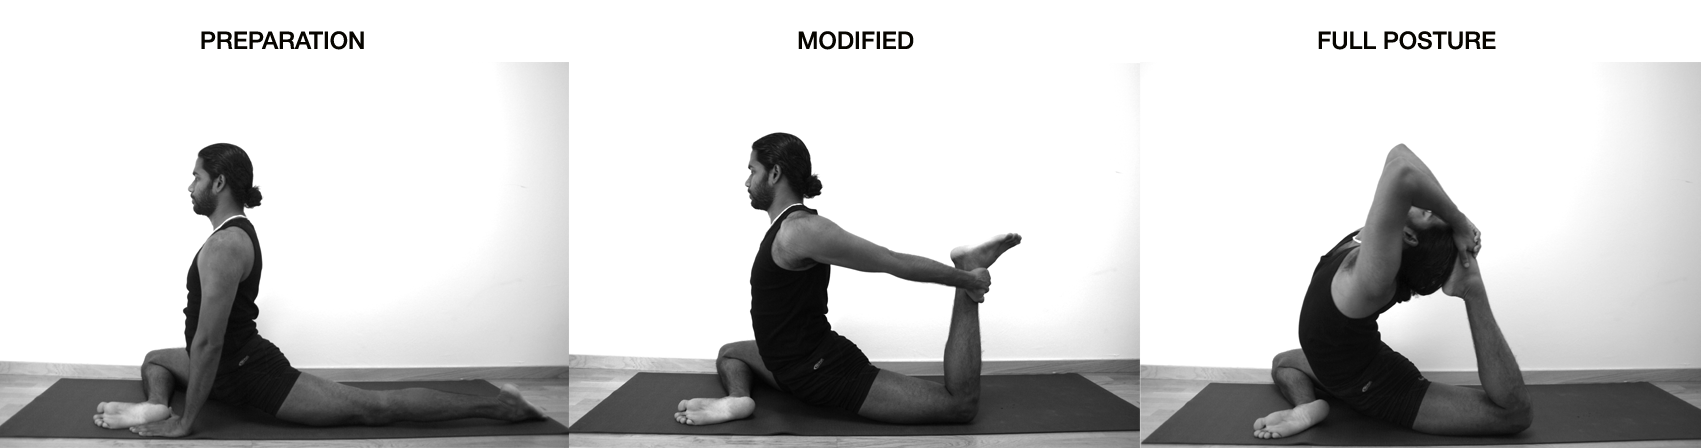 rajakapotasana-buildup